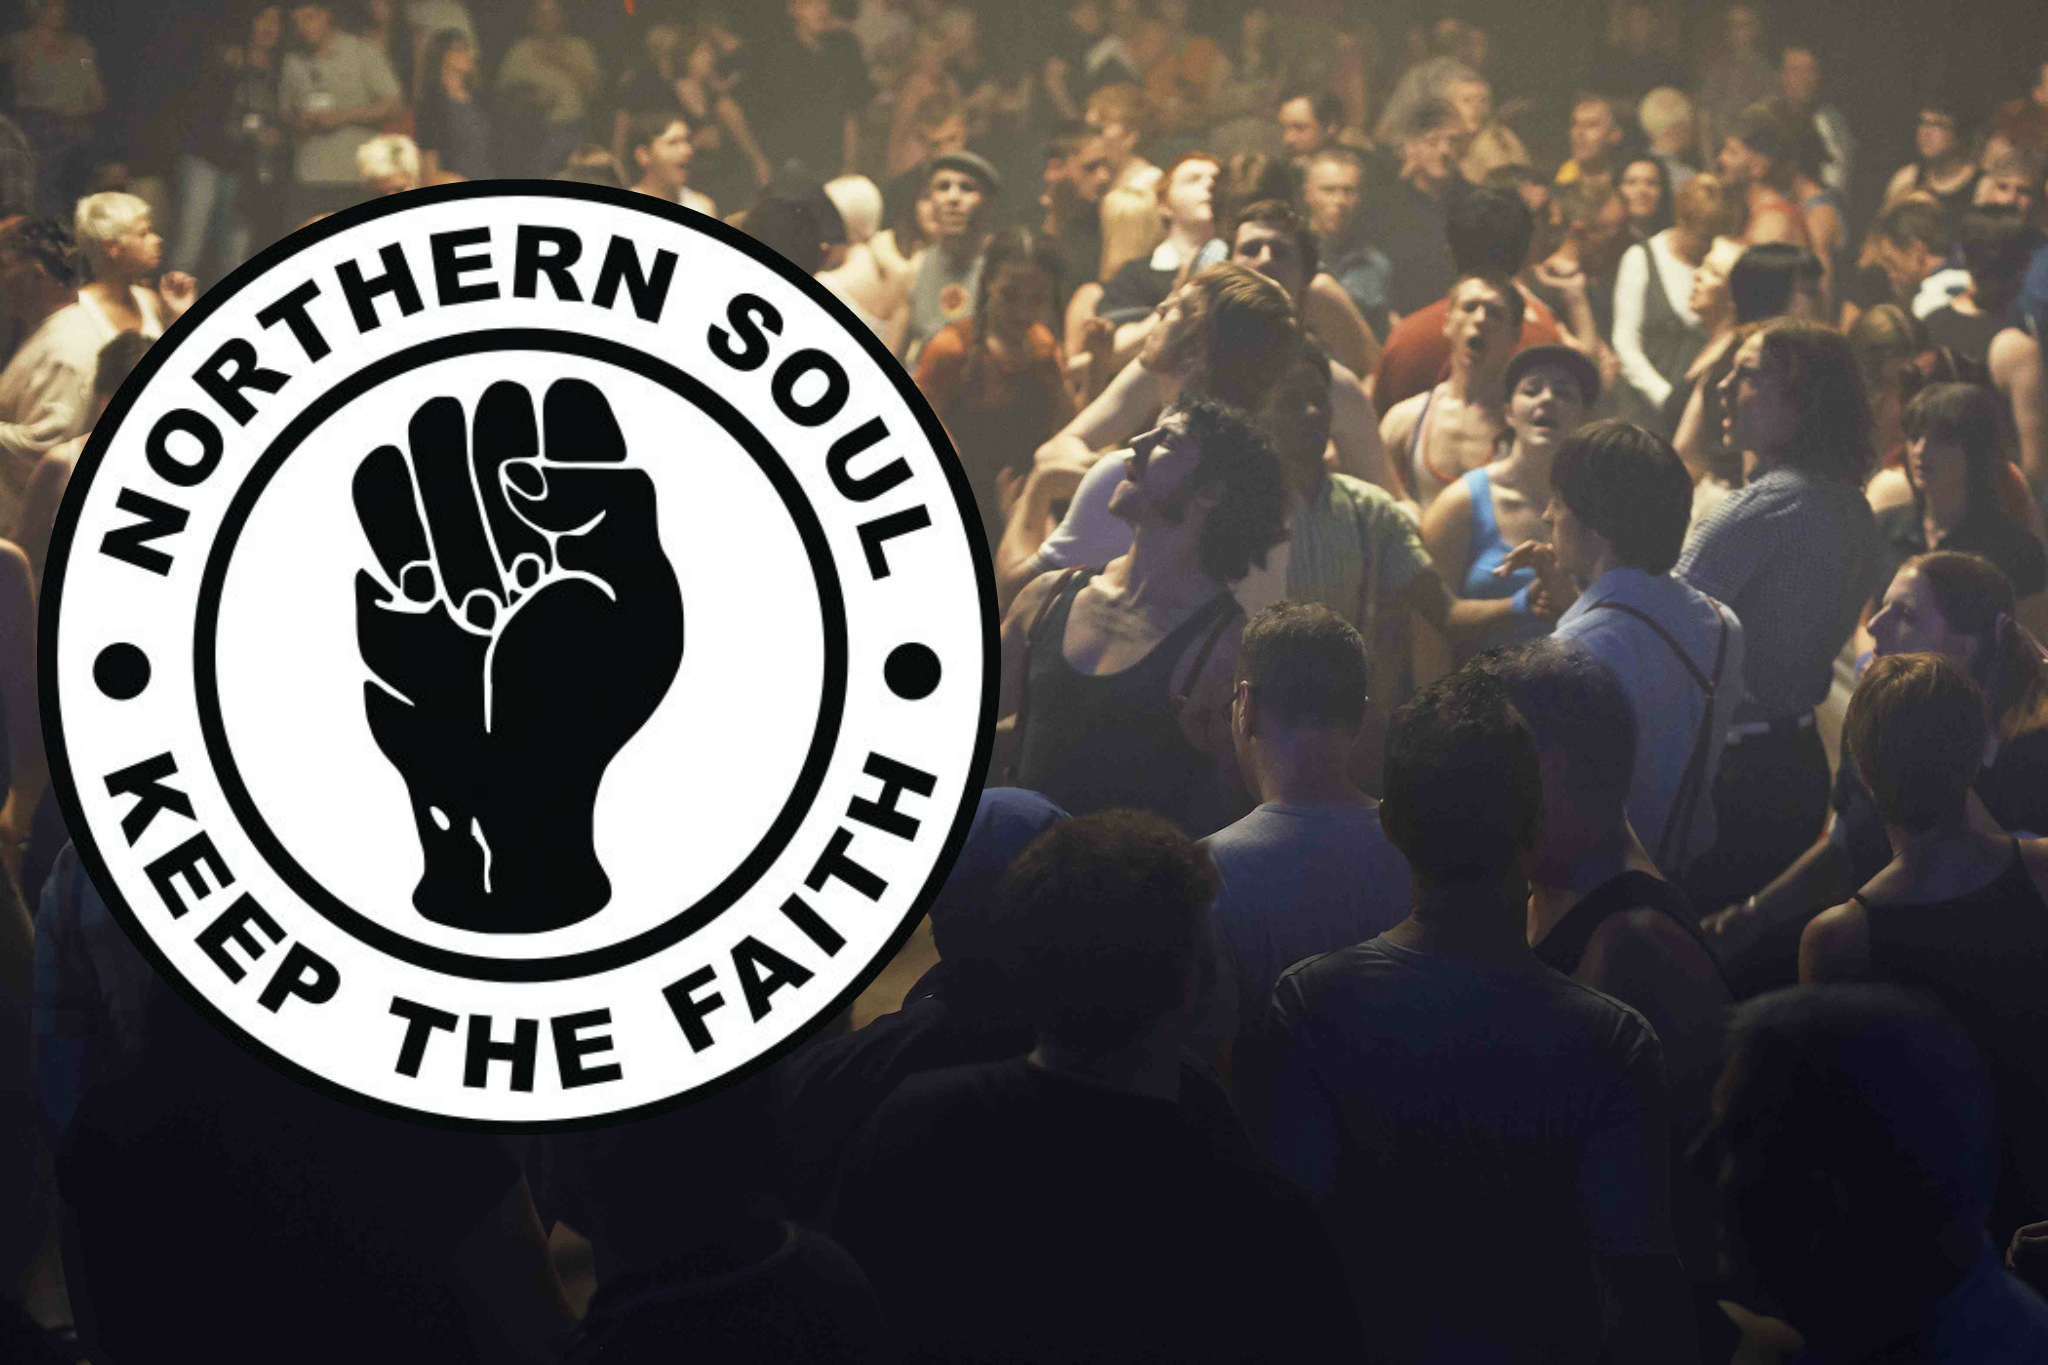 A guide to Northern soul